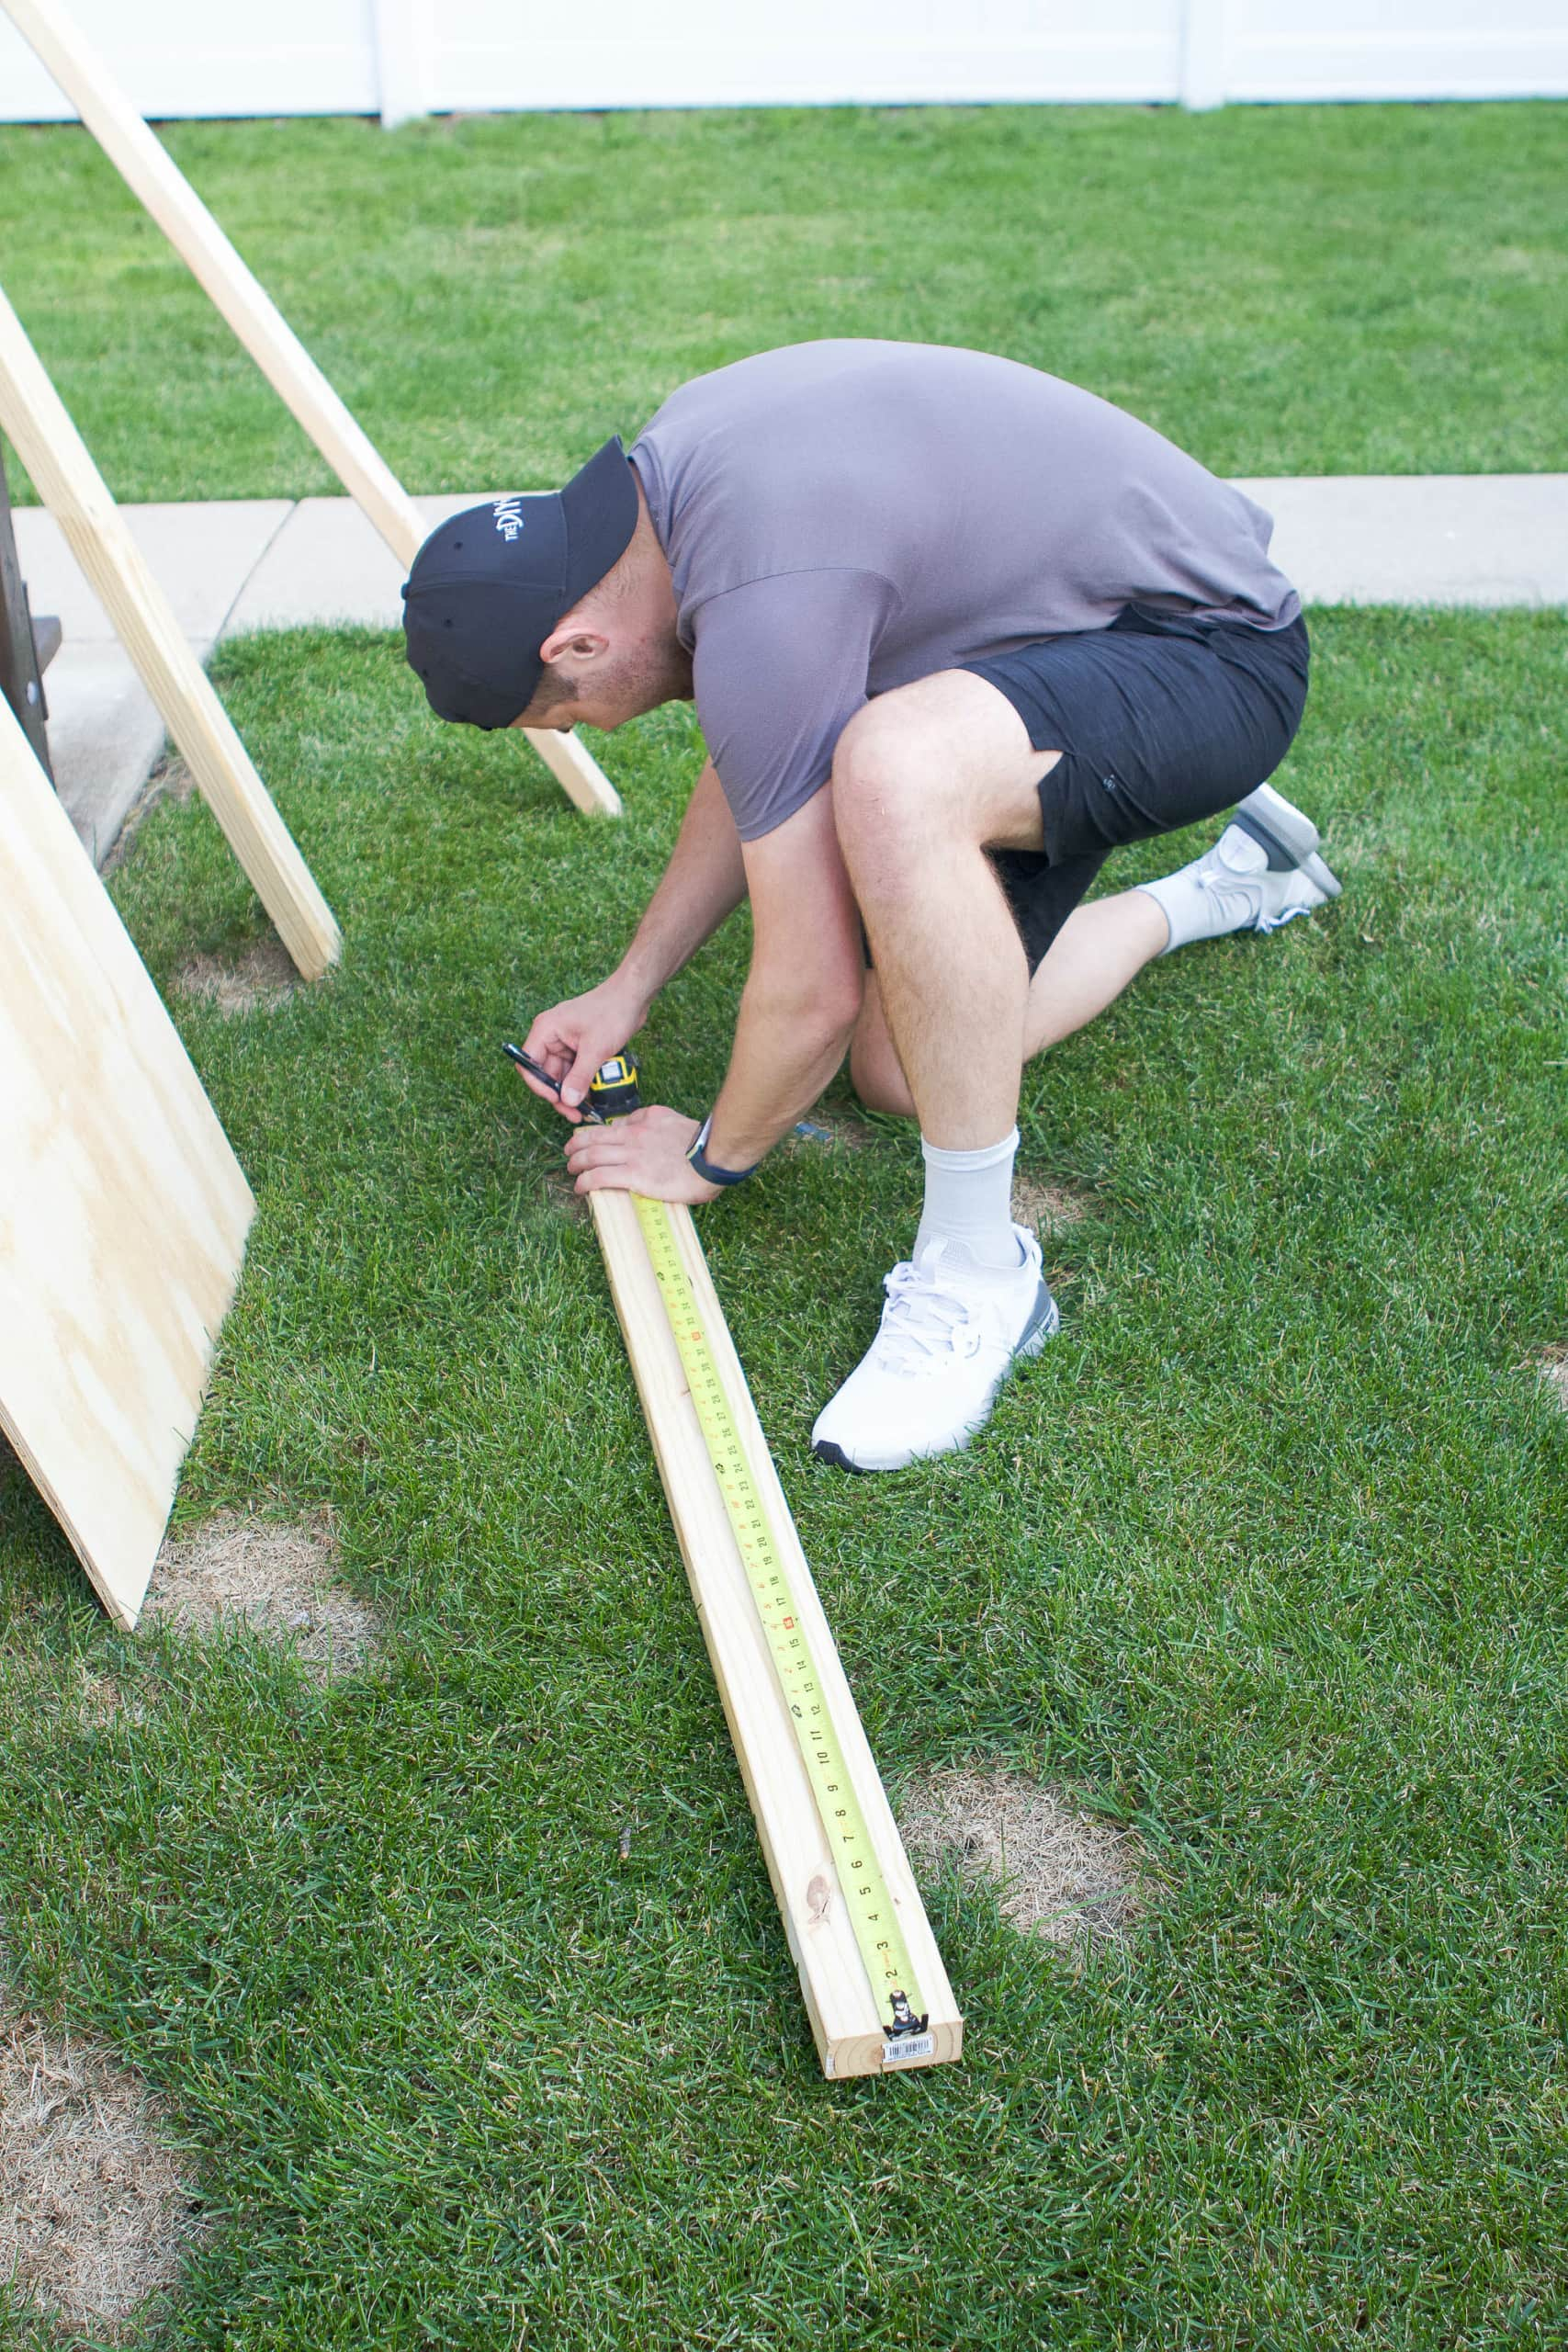 Supplies to make your own DIY cornhole boards